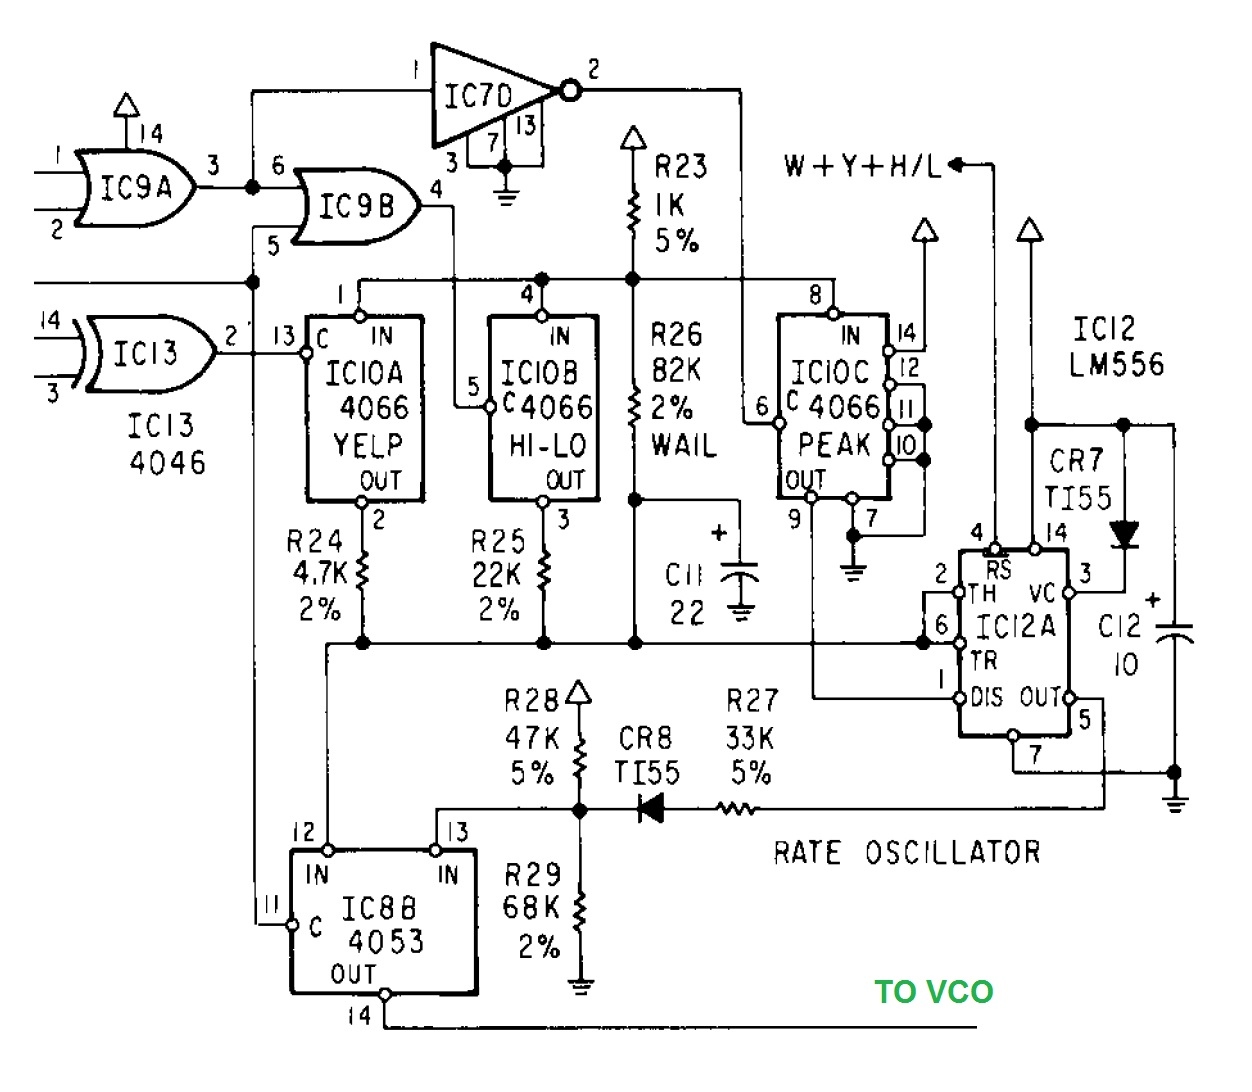 RATE_VCO wiring diagram for federal signal pa300 the wiring diagram federal signal legend lpx wiring diagram at crackthecode.co